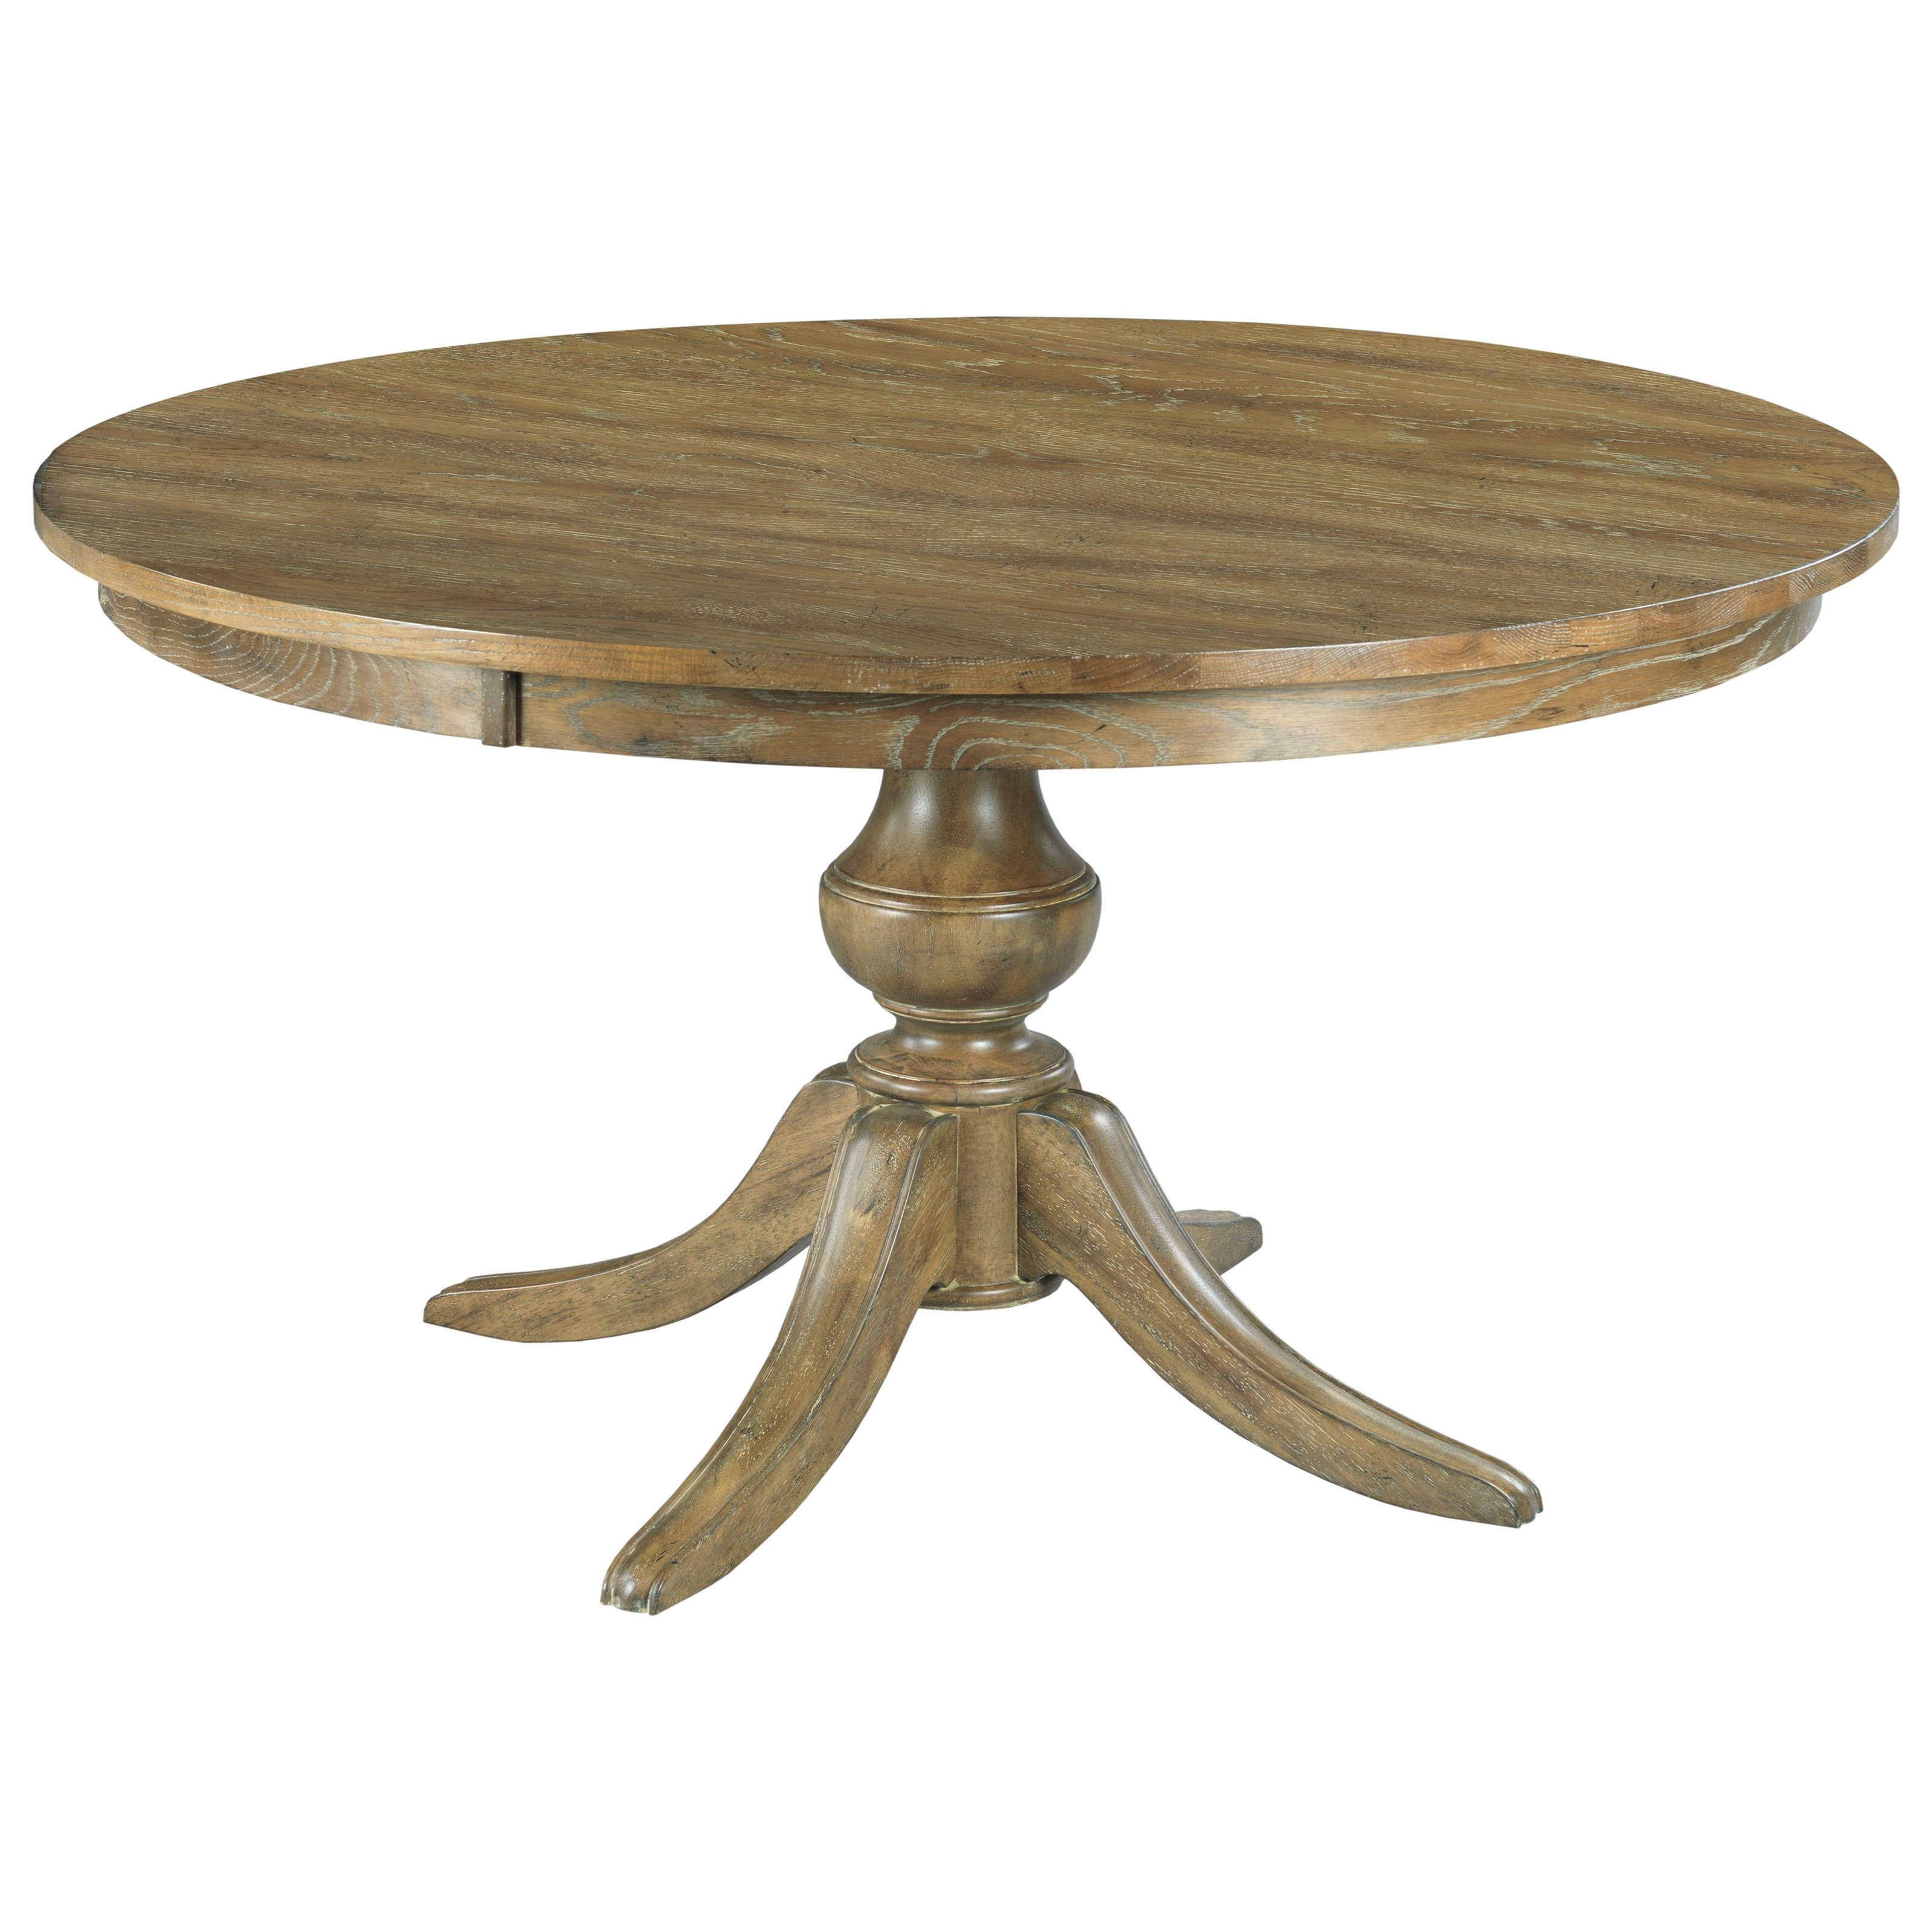 "Wood Round Dining Table: Kincaid Furniture The Nook 54"" Round Solid Wood Dining"